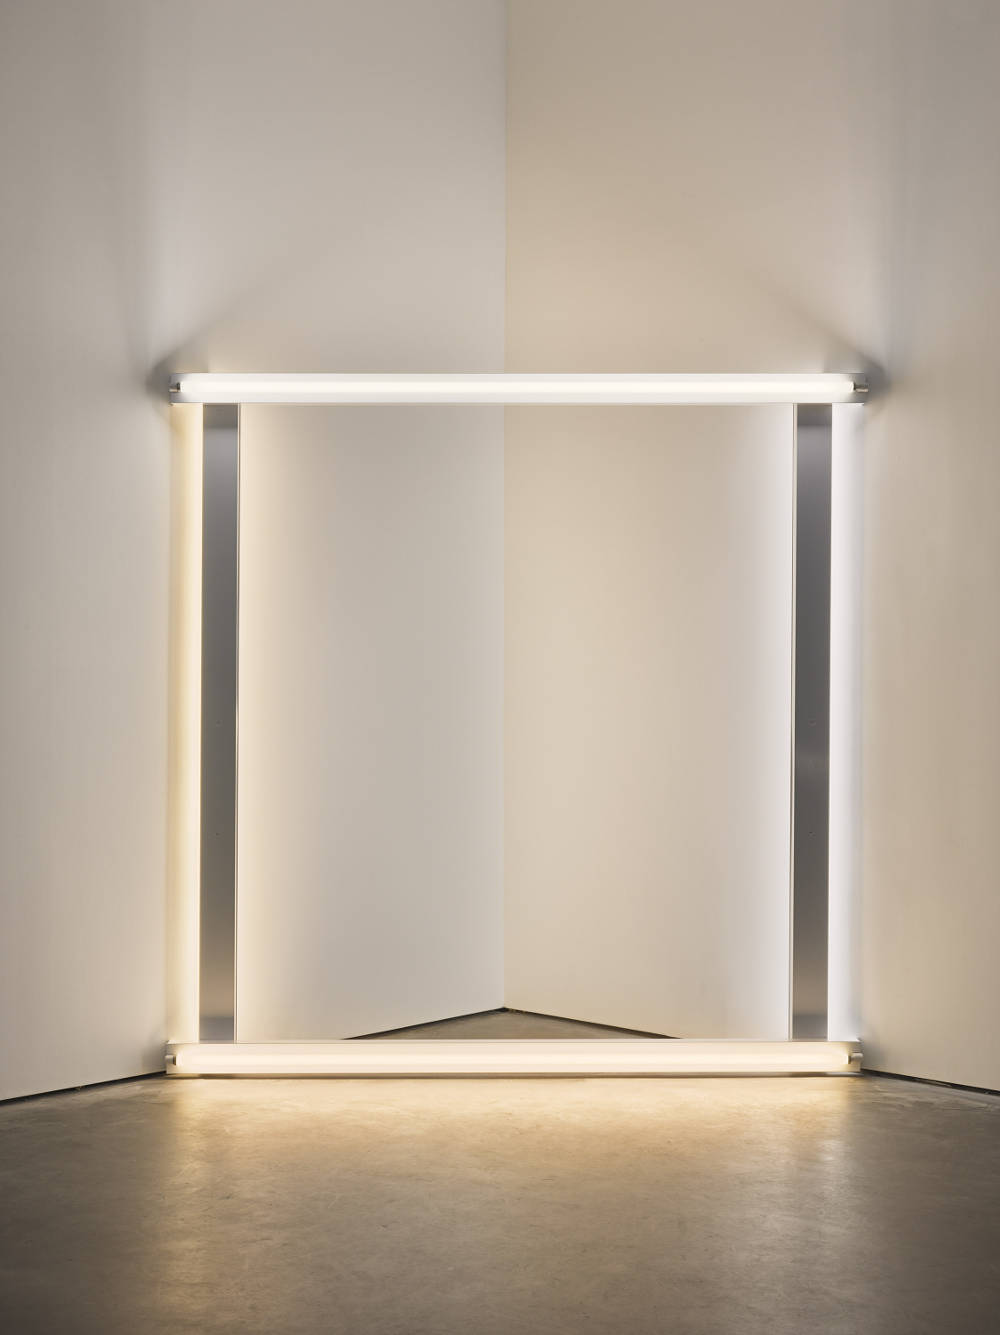 Dan Flavin, Untitled (to Helen Winkler), 1972. Cool white and warm white fluorescent light 244 cm square across a corner 96 1/8 in square across a corner. Edition 3 of 5